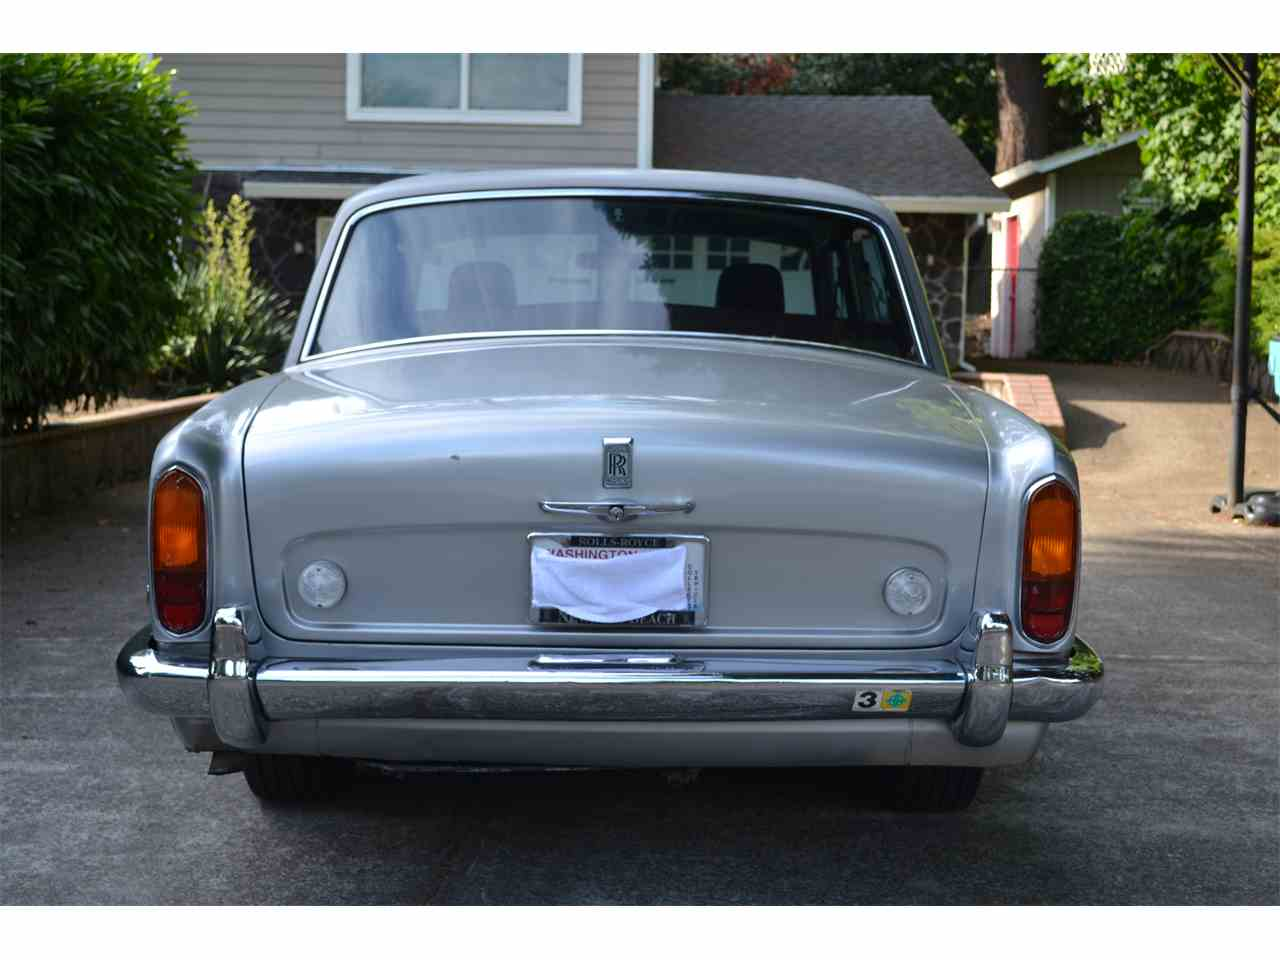 Large Picture of 1972 Rolls-Royce Silver Shadow located in Oregon - $10,500.00 Offered by a Private Seller - LE74